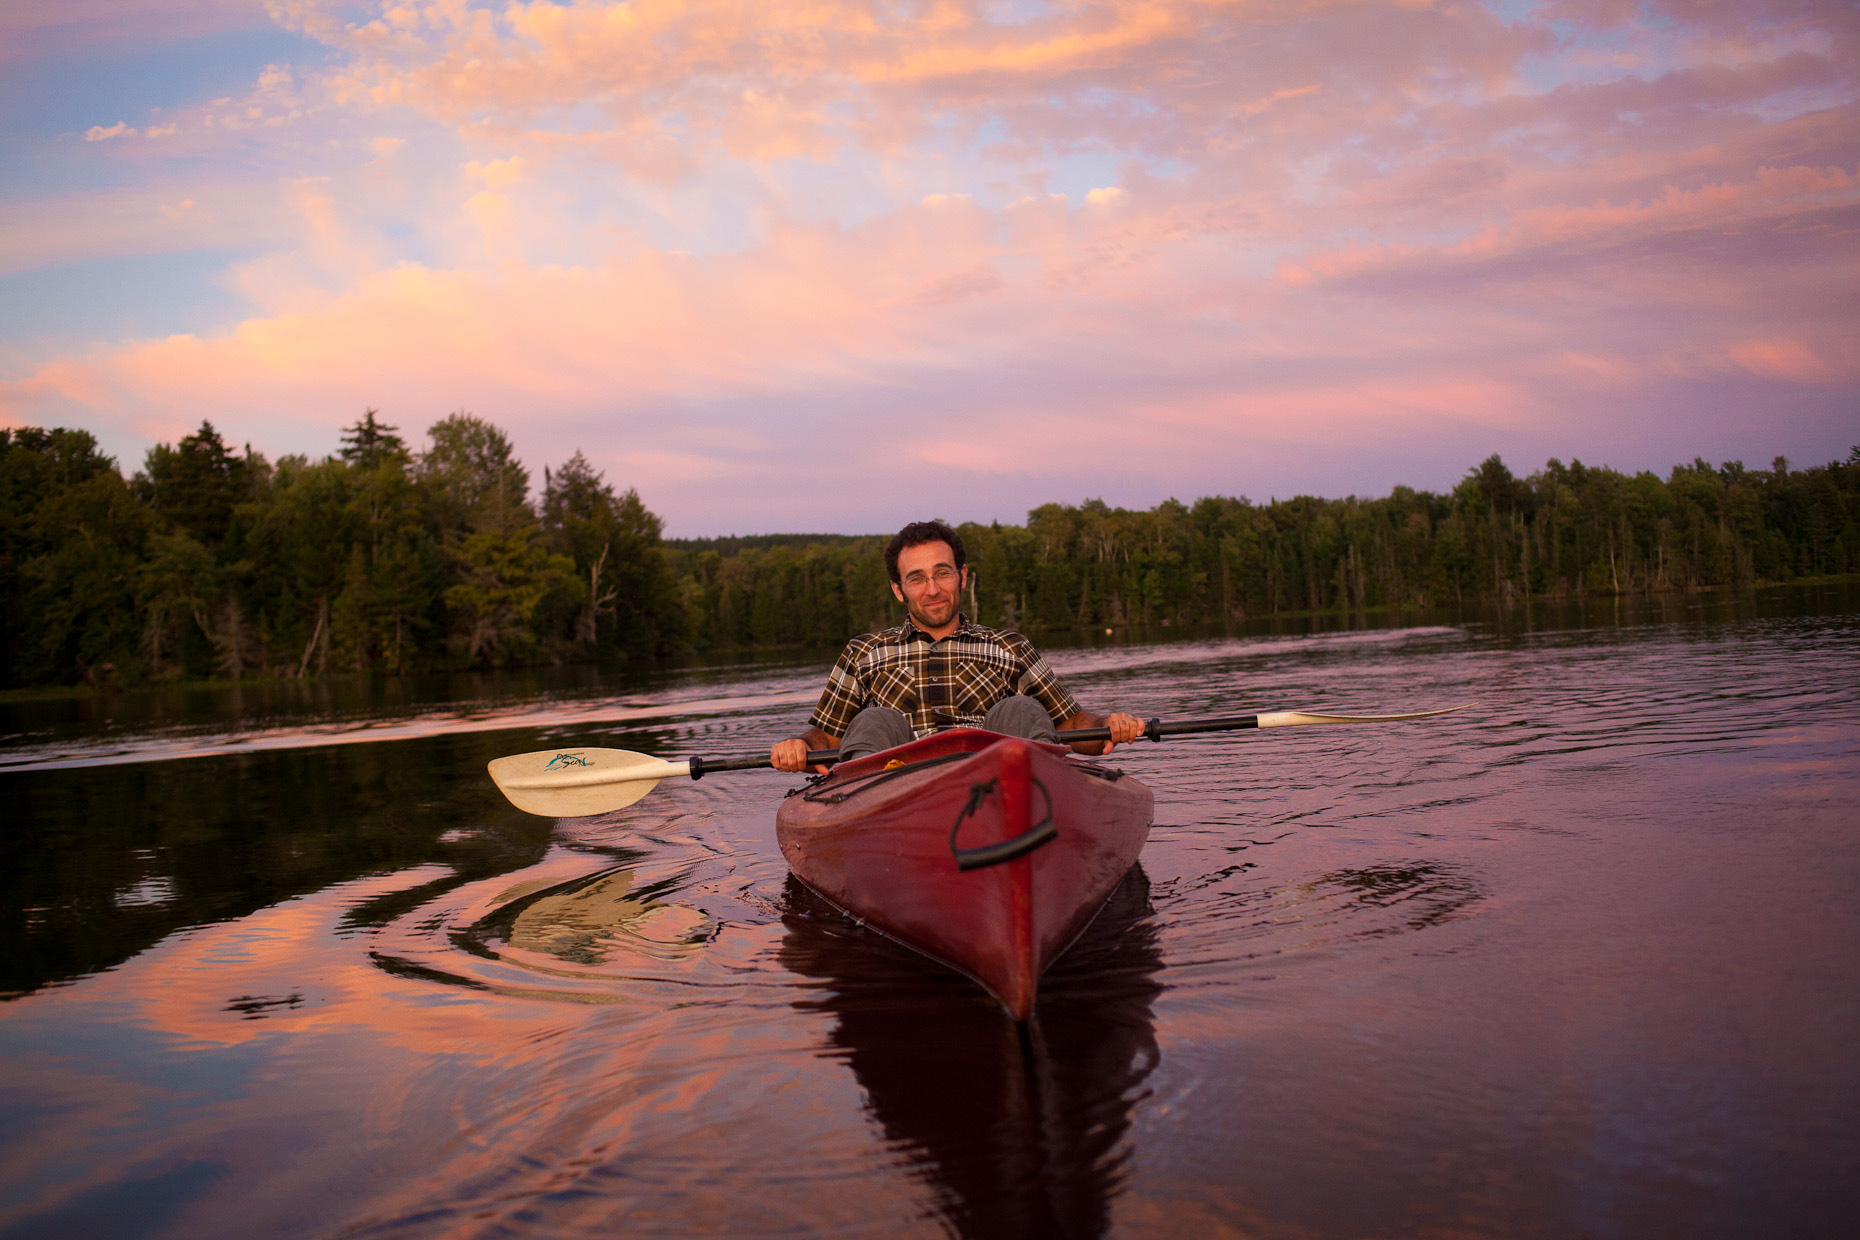 Adirondacks_Kayaking_Lake_web